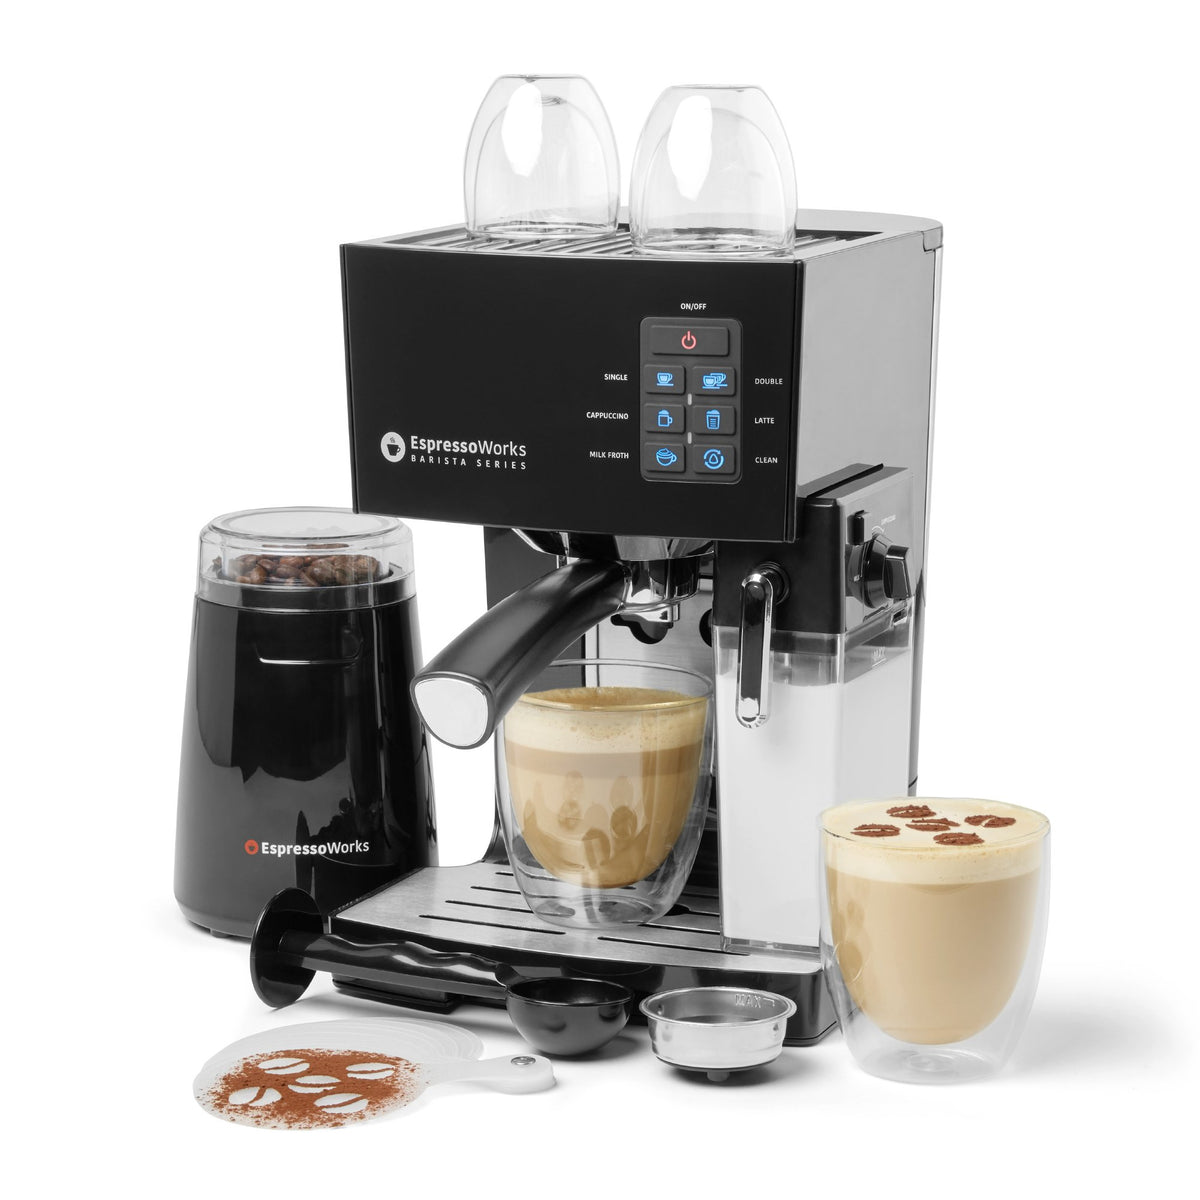 Replacement Milk Tank only compatible with the EspressoWorks 10pc 19-bar Espresso and Cappuccino Maker Set